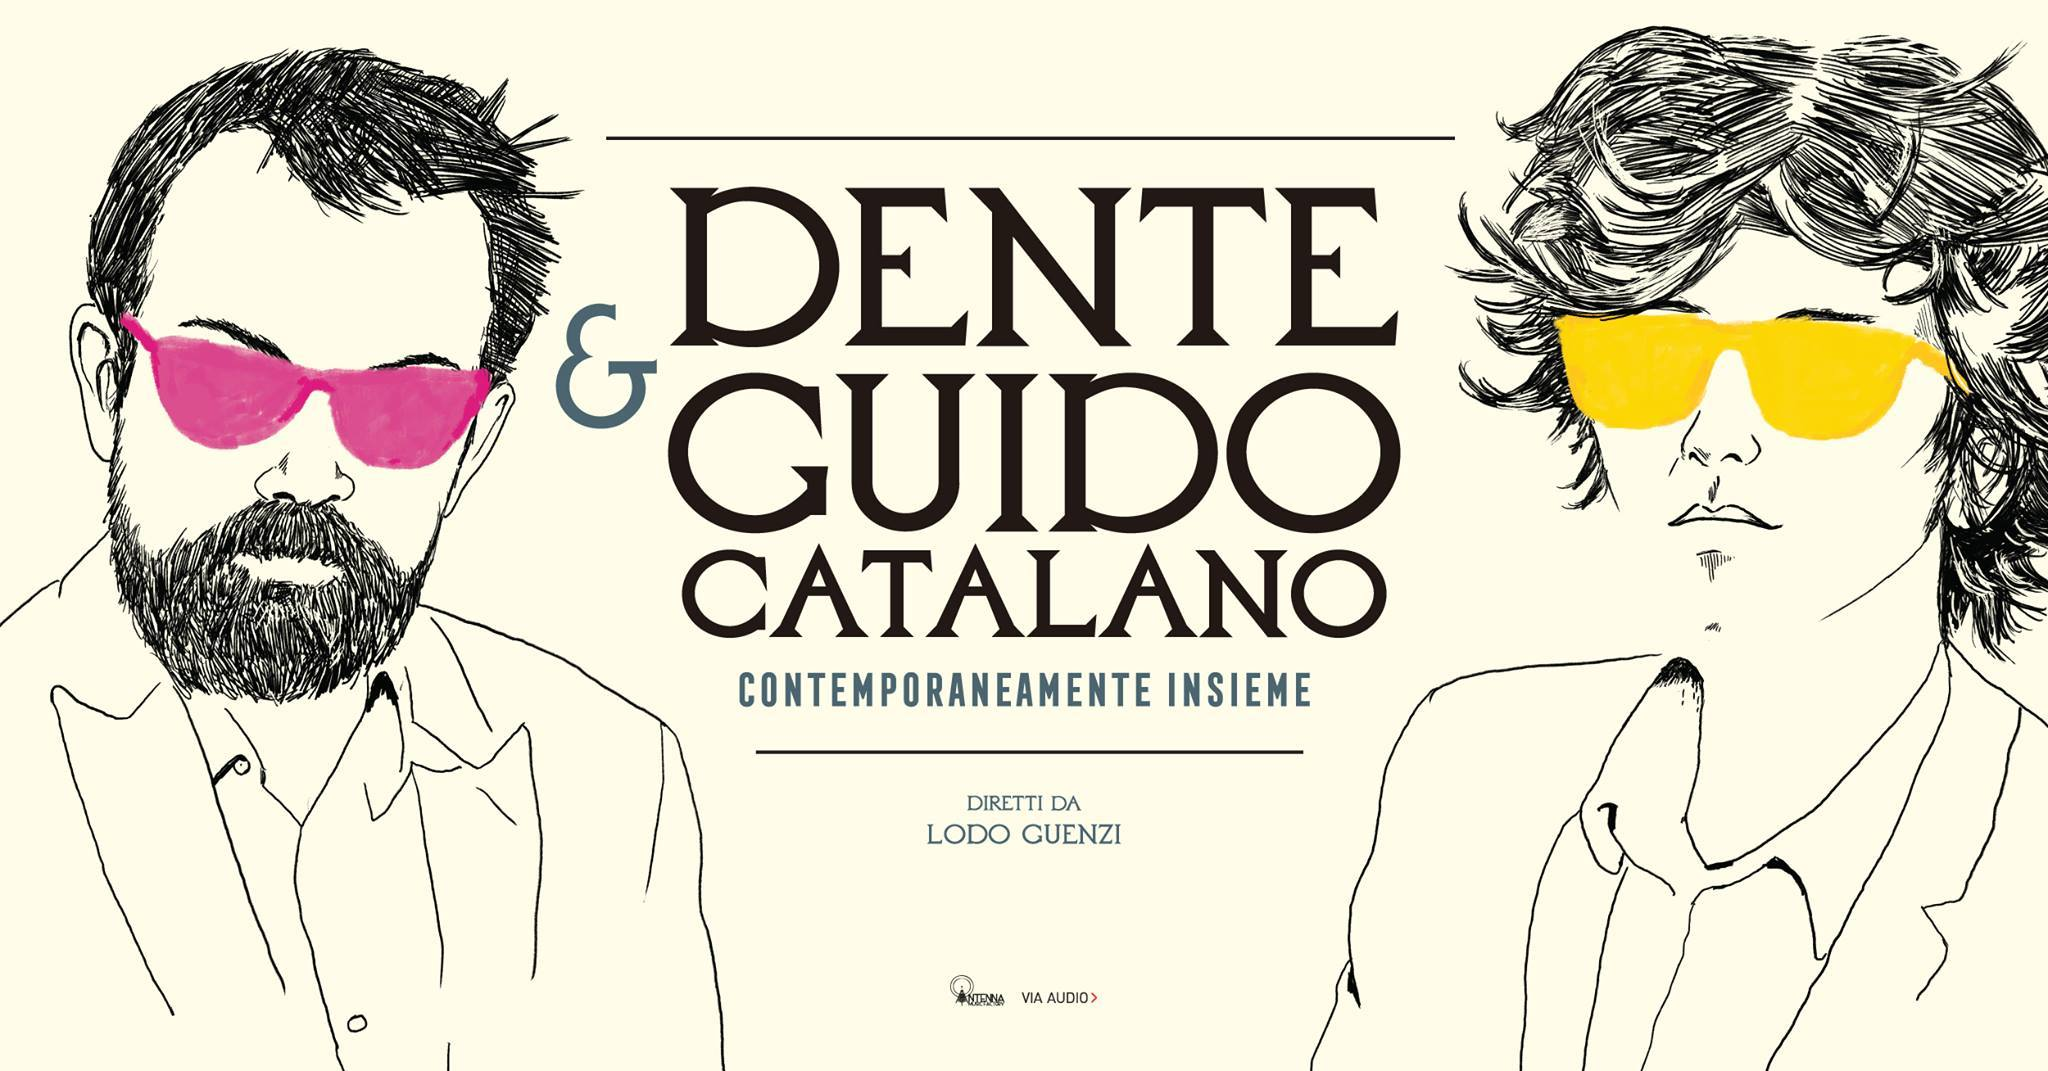 DENTE & CATALANO